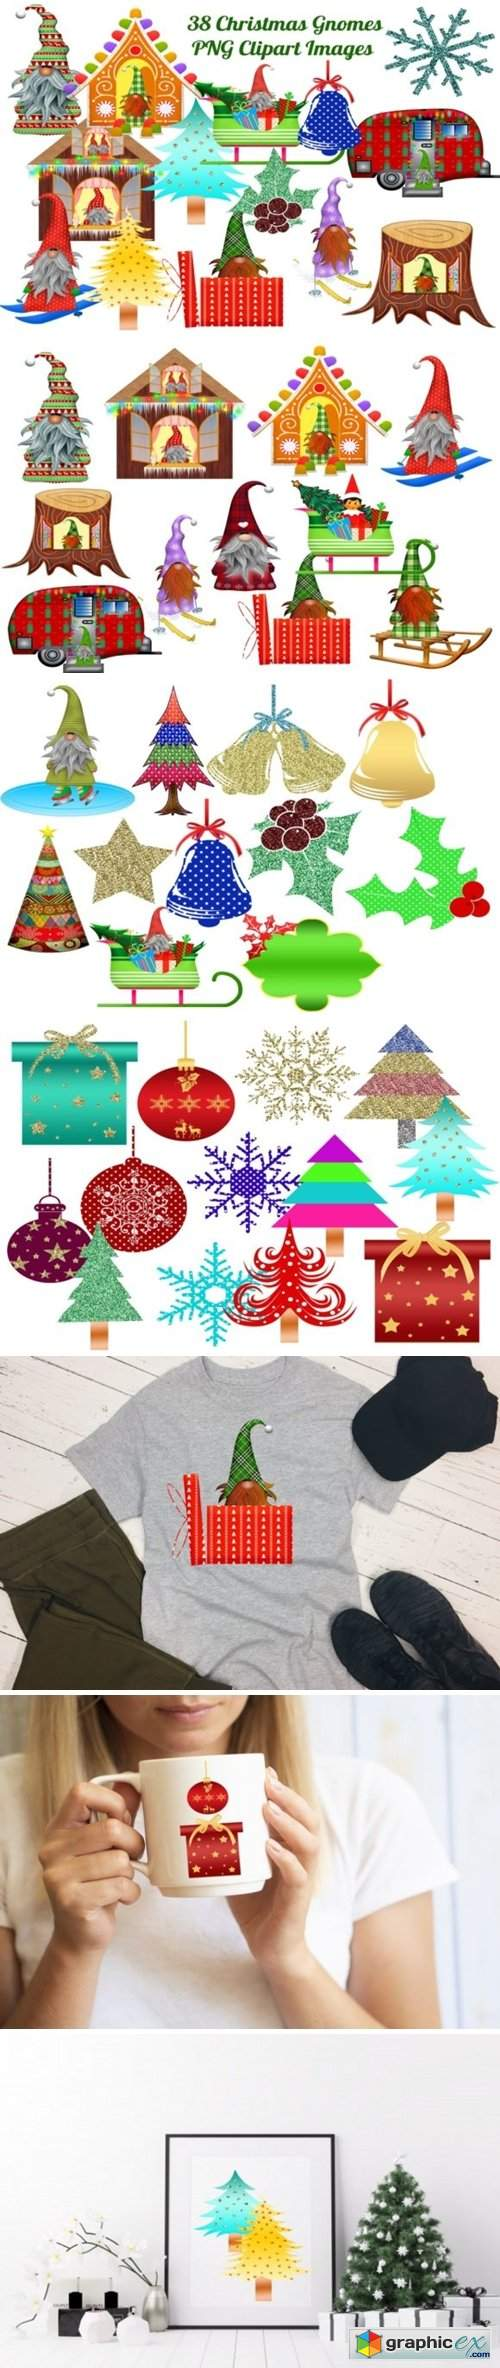 38 Christmas Gnomes Clip Art Images